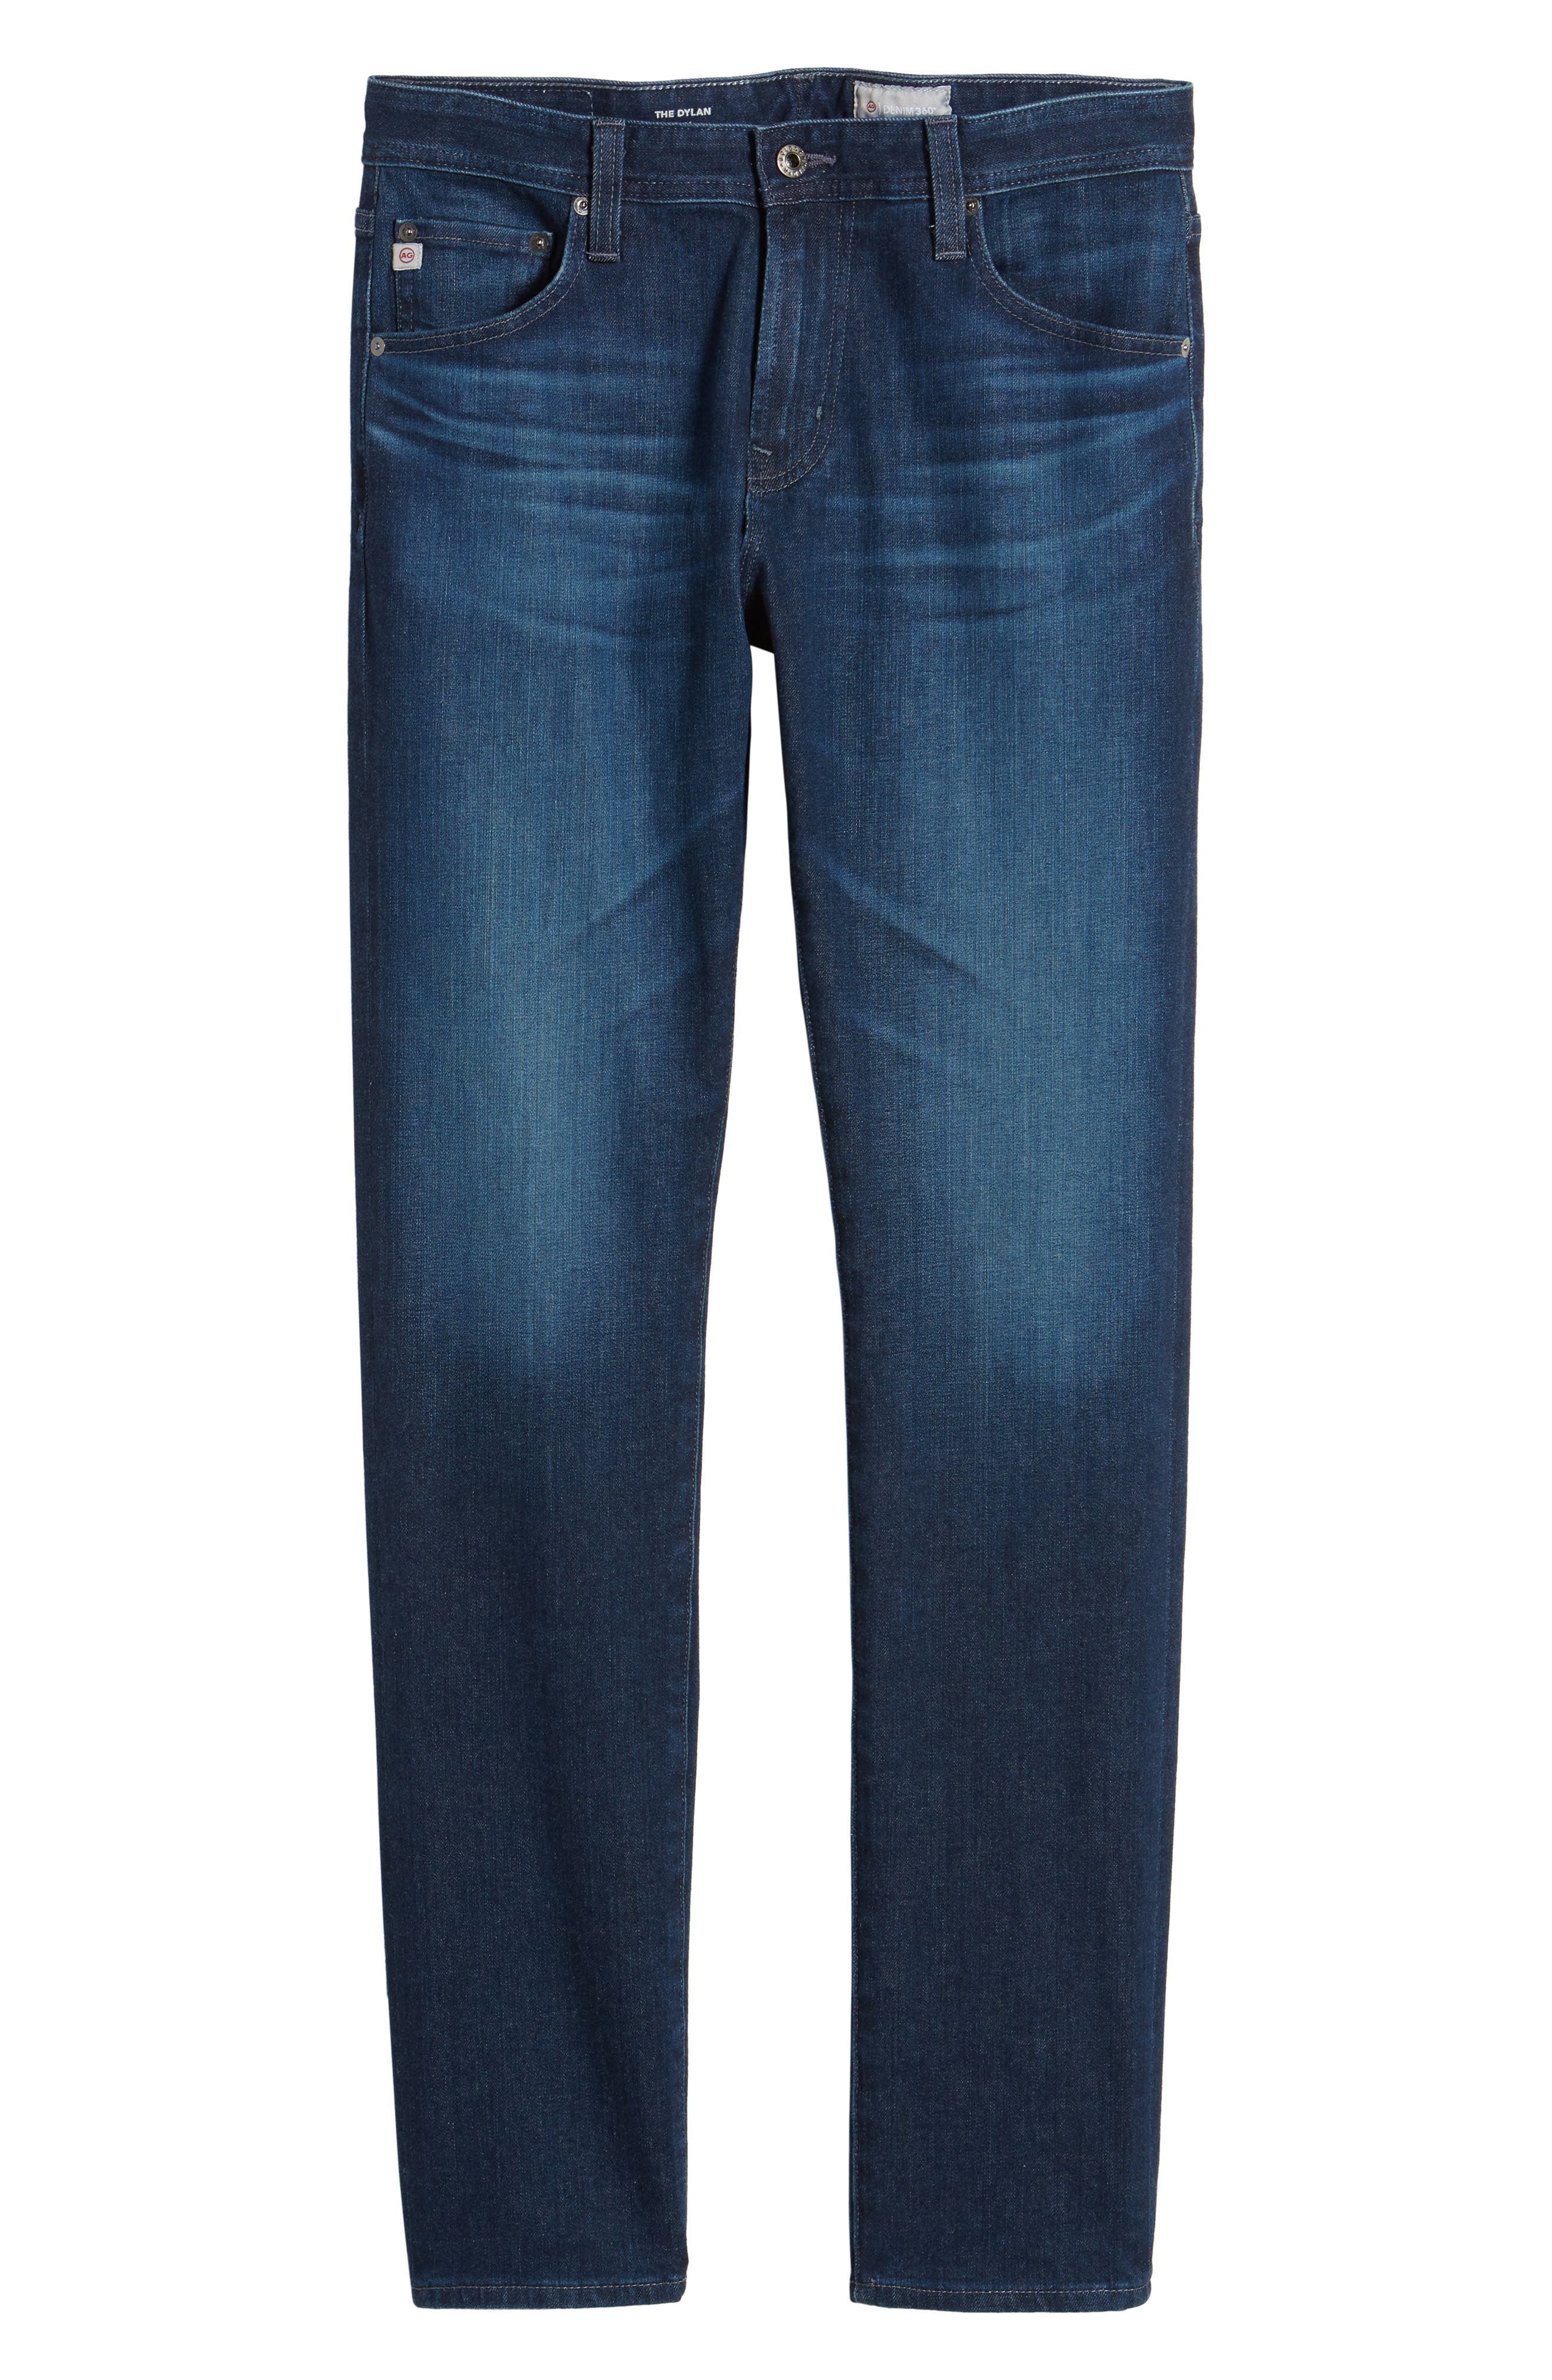 Dylan Skinny Fit Jeans,                             Alternate thumbnail 6, color,                             Crosscreek